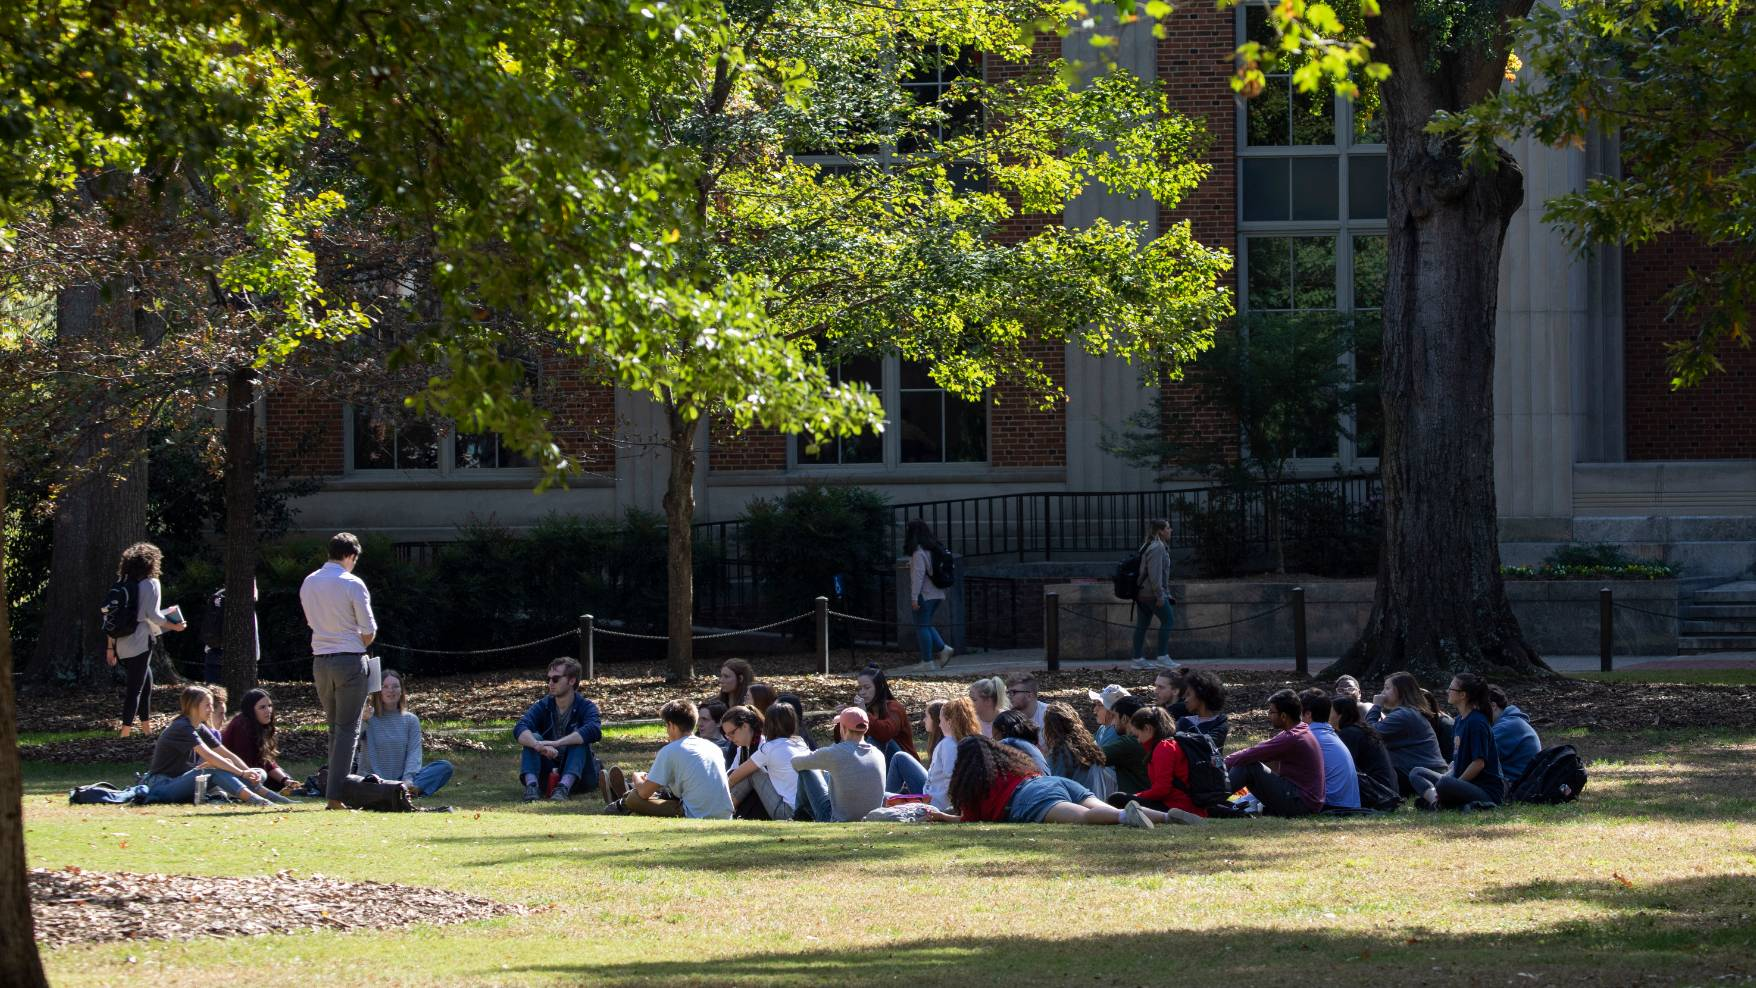 A professor stands and speaks to a group of students sitting or lying down on the grass